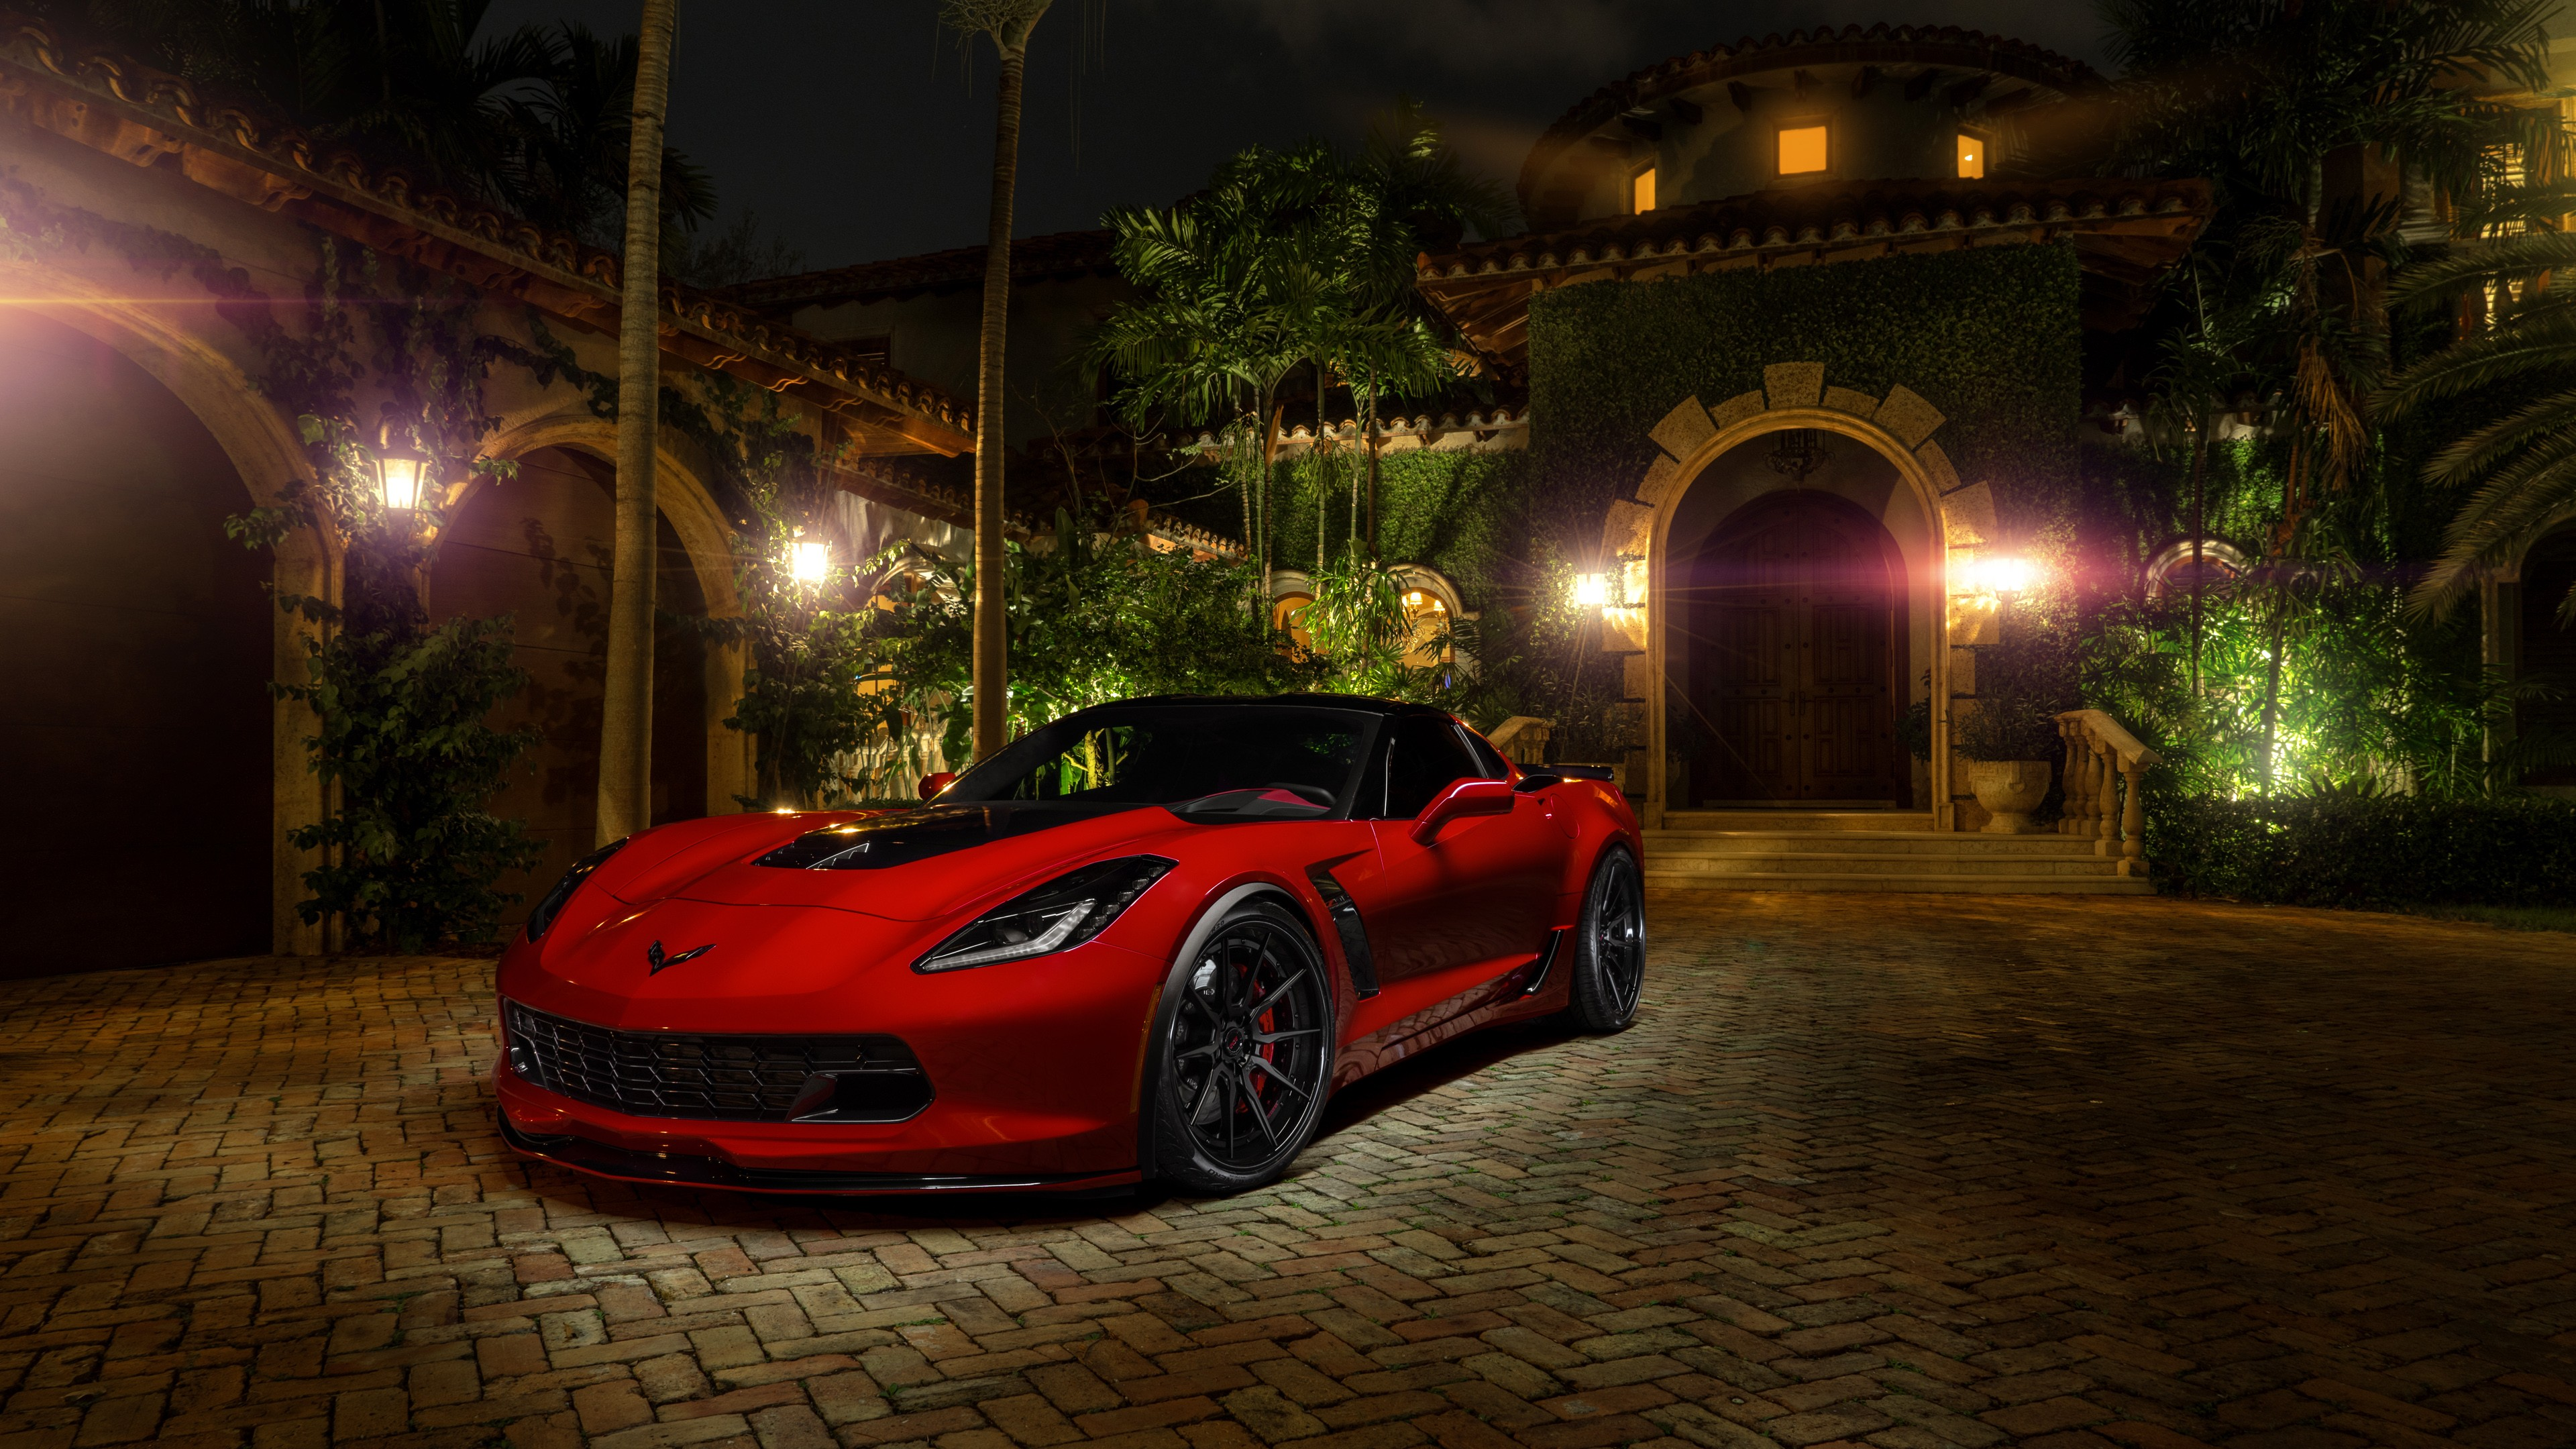 ADV1 Chevrolet Corvette C7 Z06 Wallpaper | HD Car ...